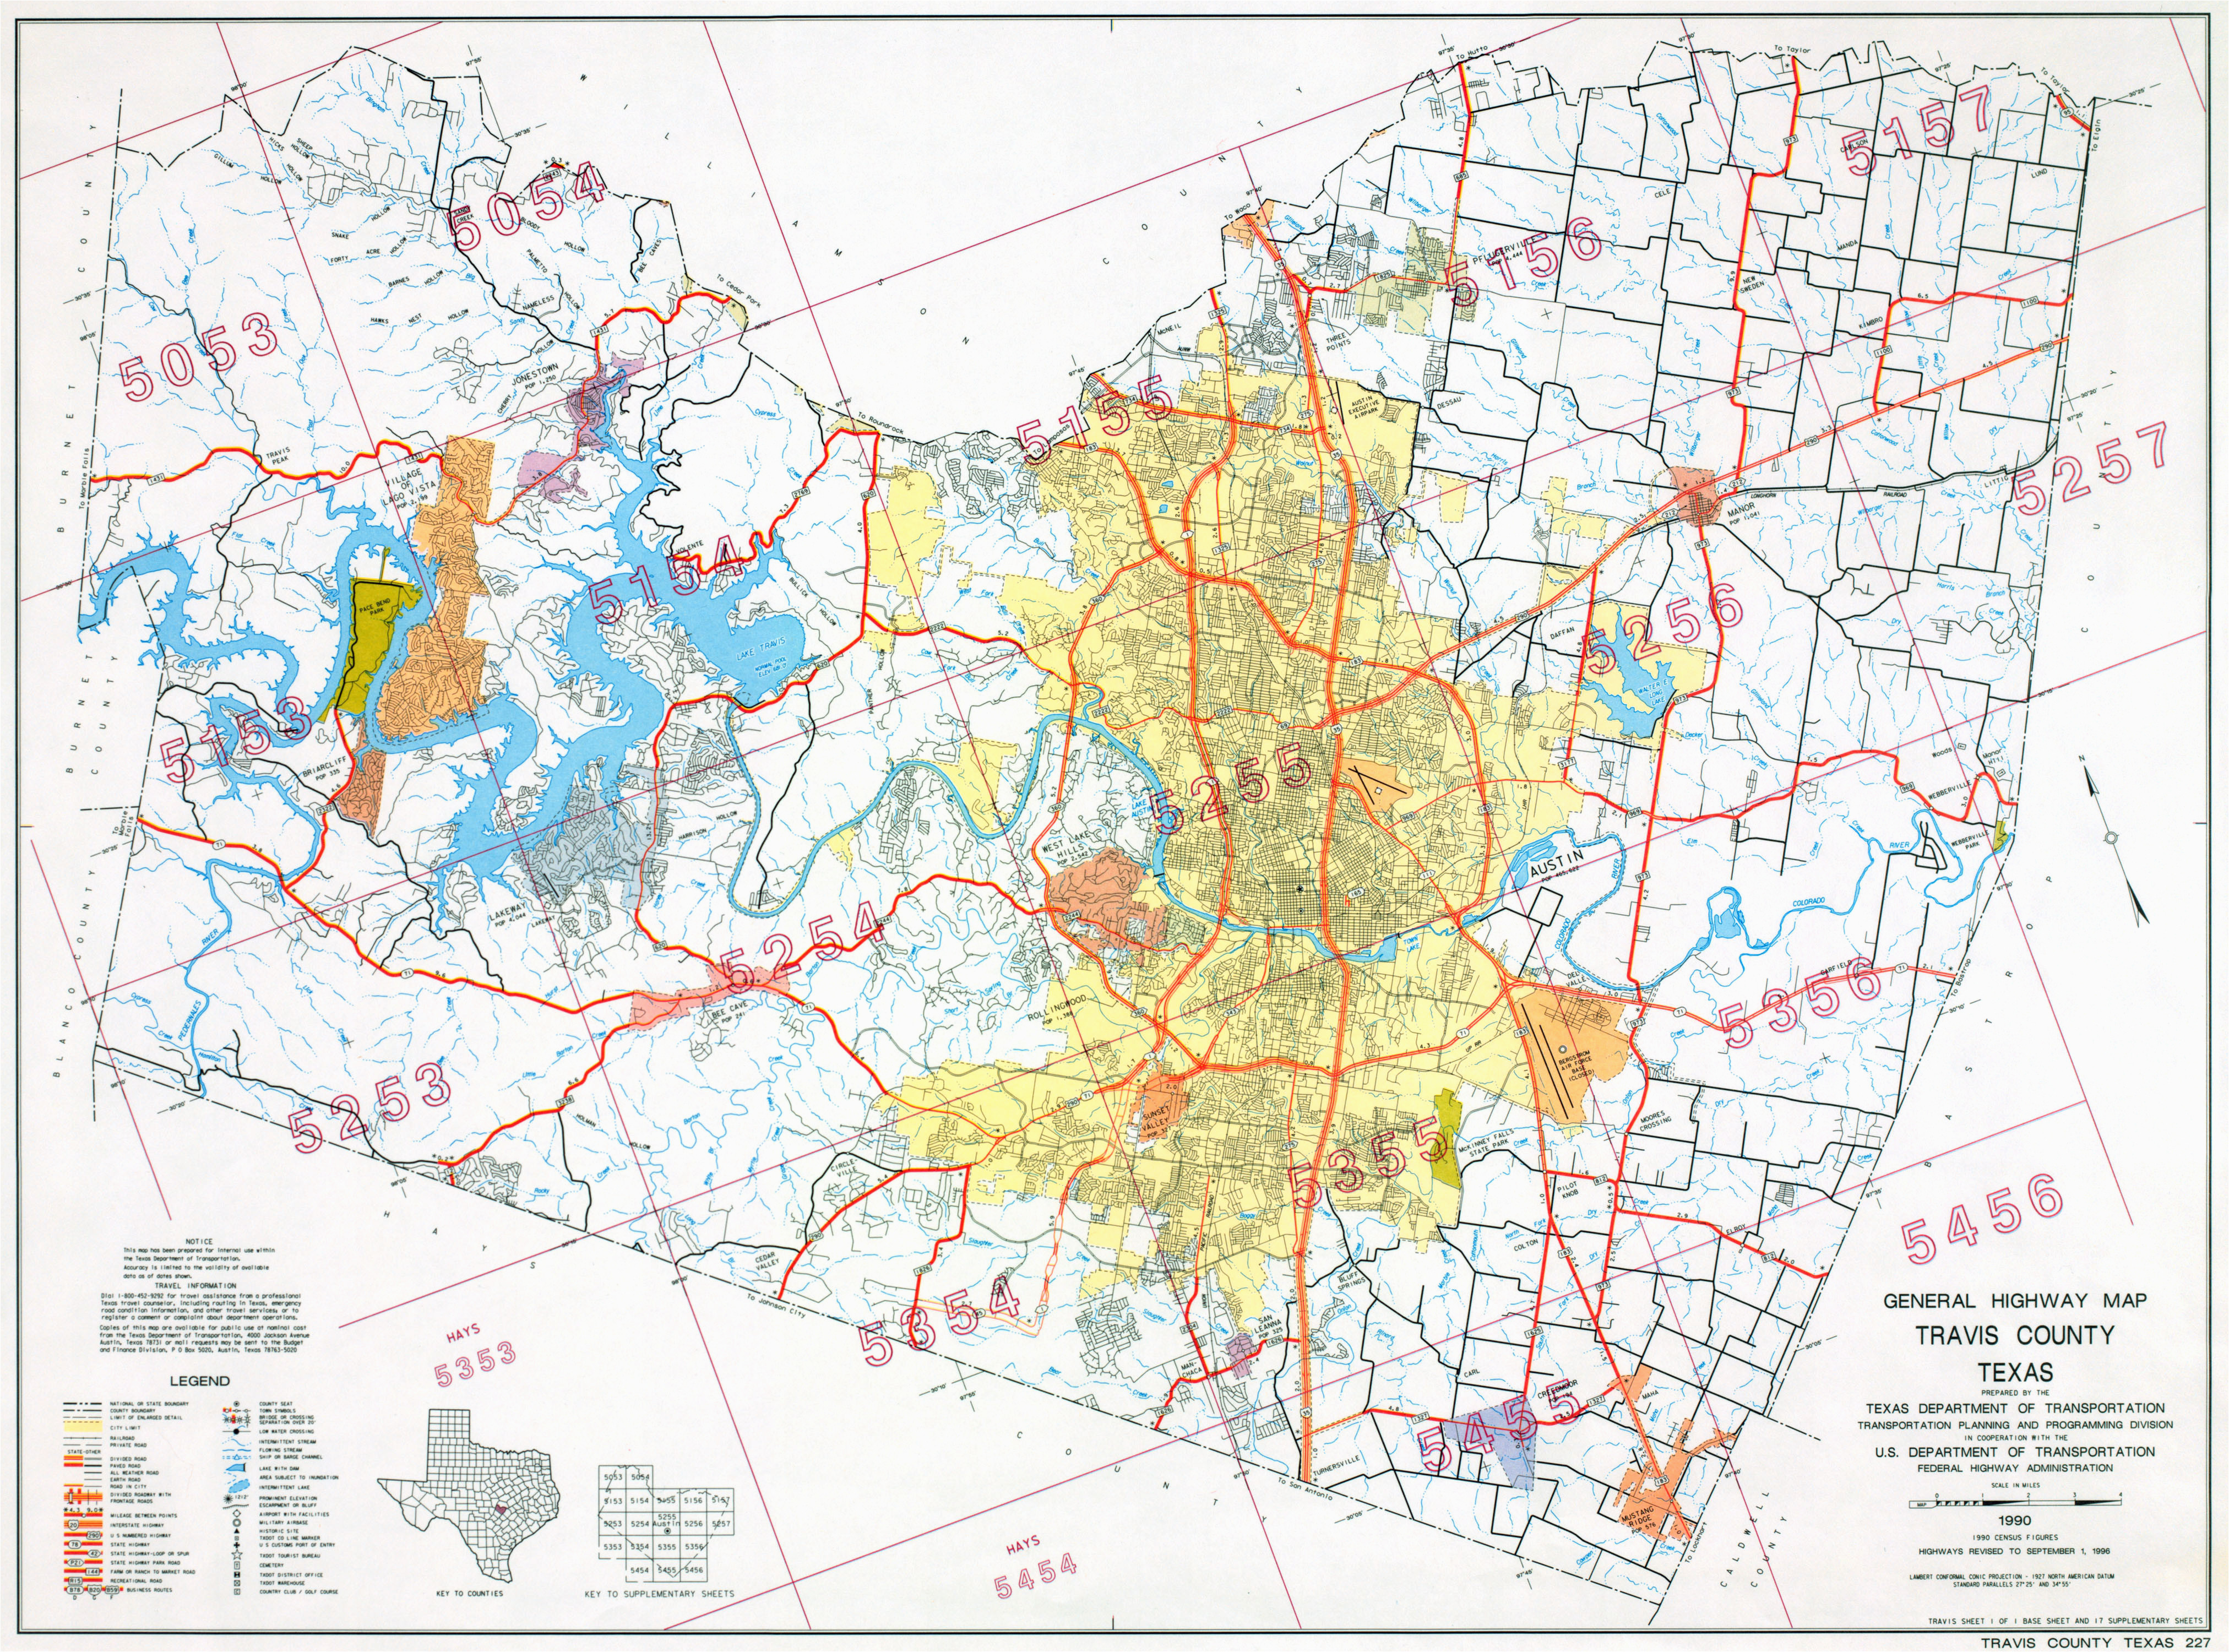 amarillo tx zip code lovely map texas showing austin map city austin